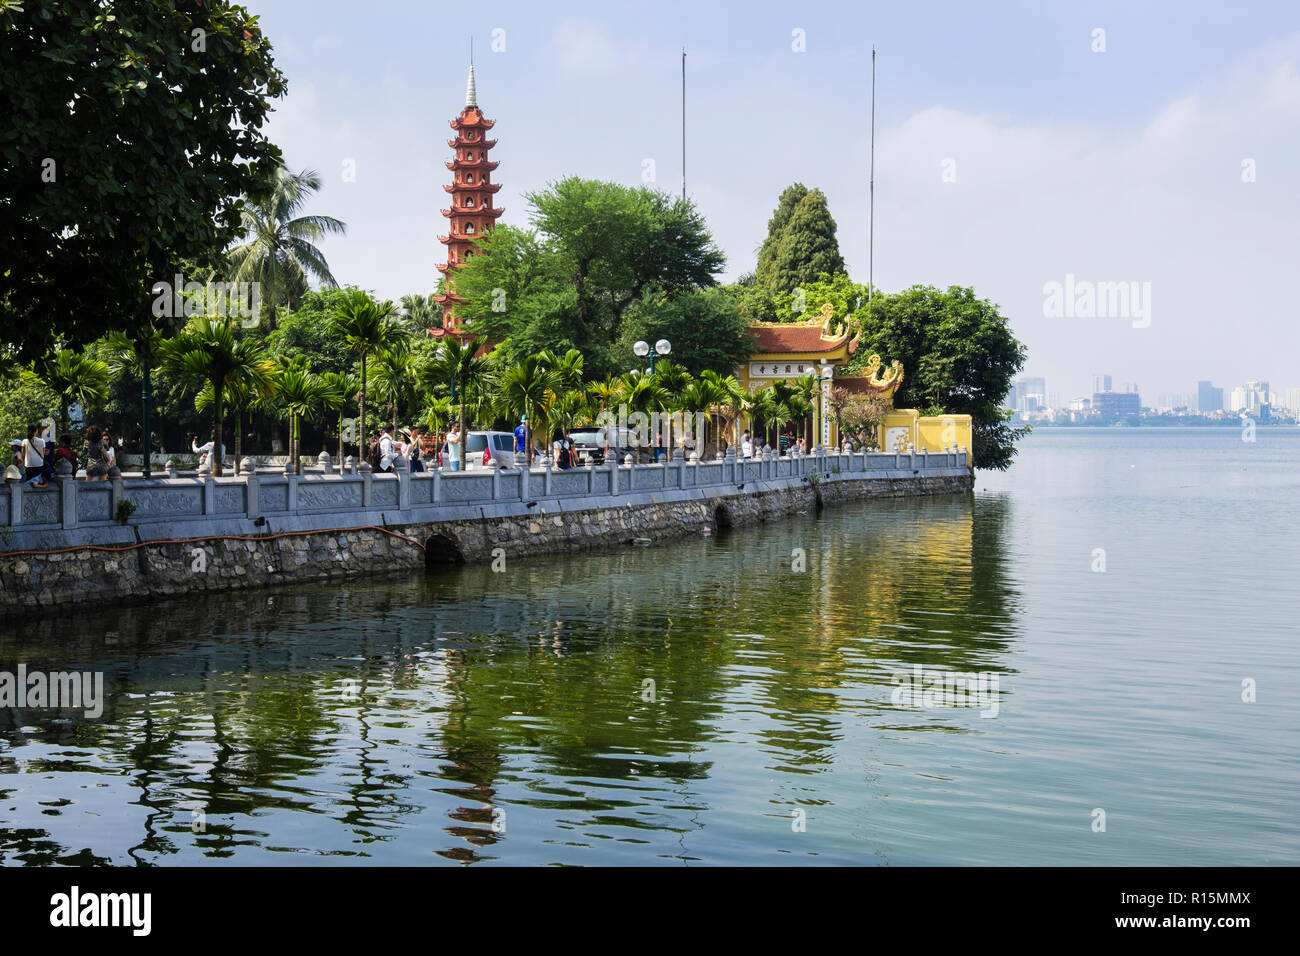 Tourists on causeway leading to Tran Quoc Pagoda and temple on West Lake. Hanoi, Vietnam, Asia - Stock Image